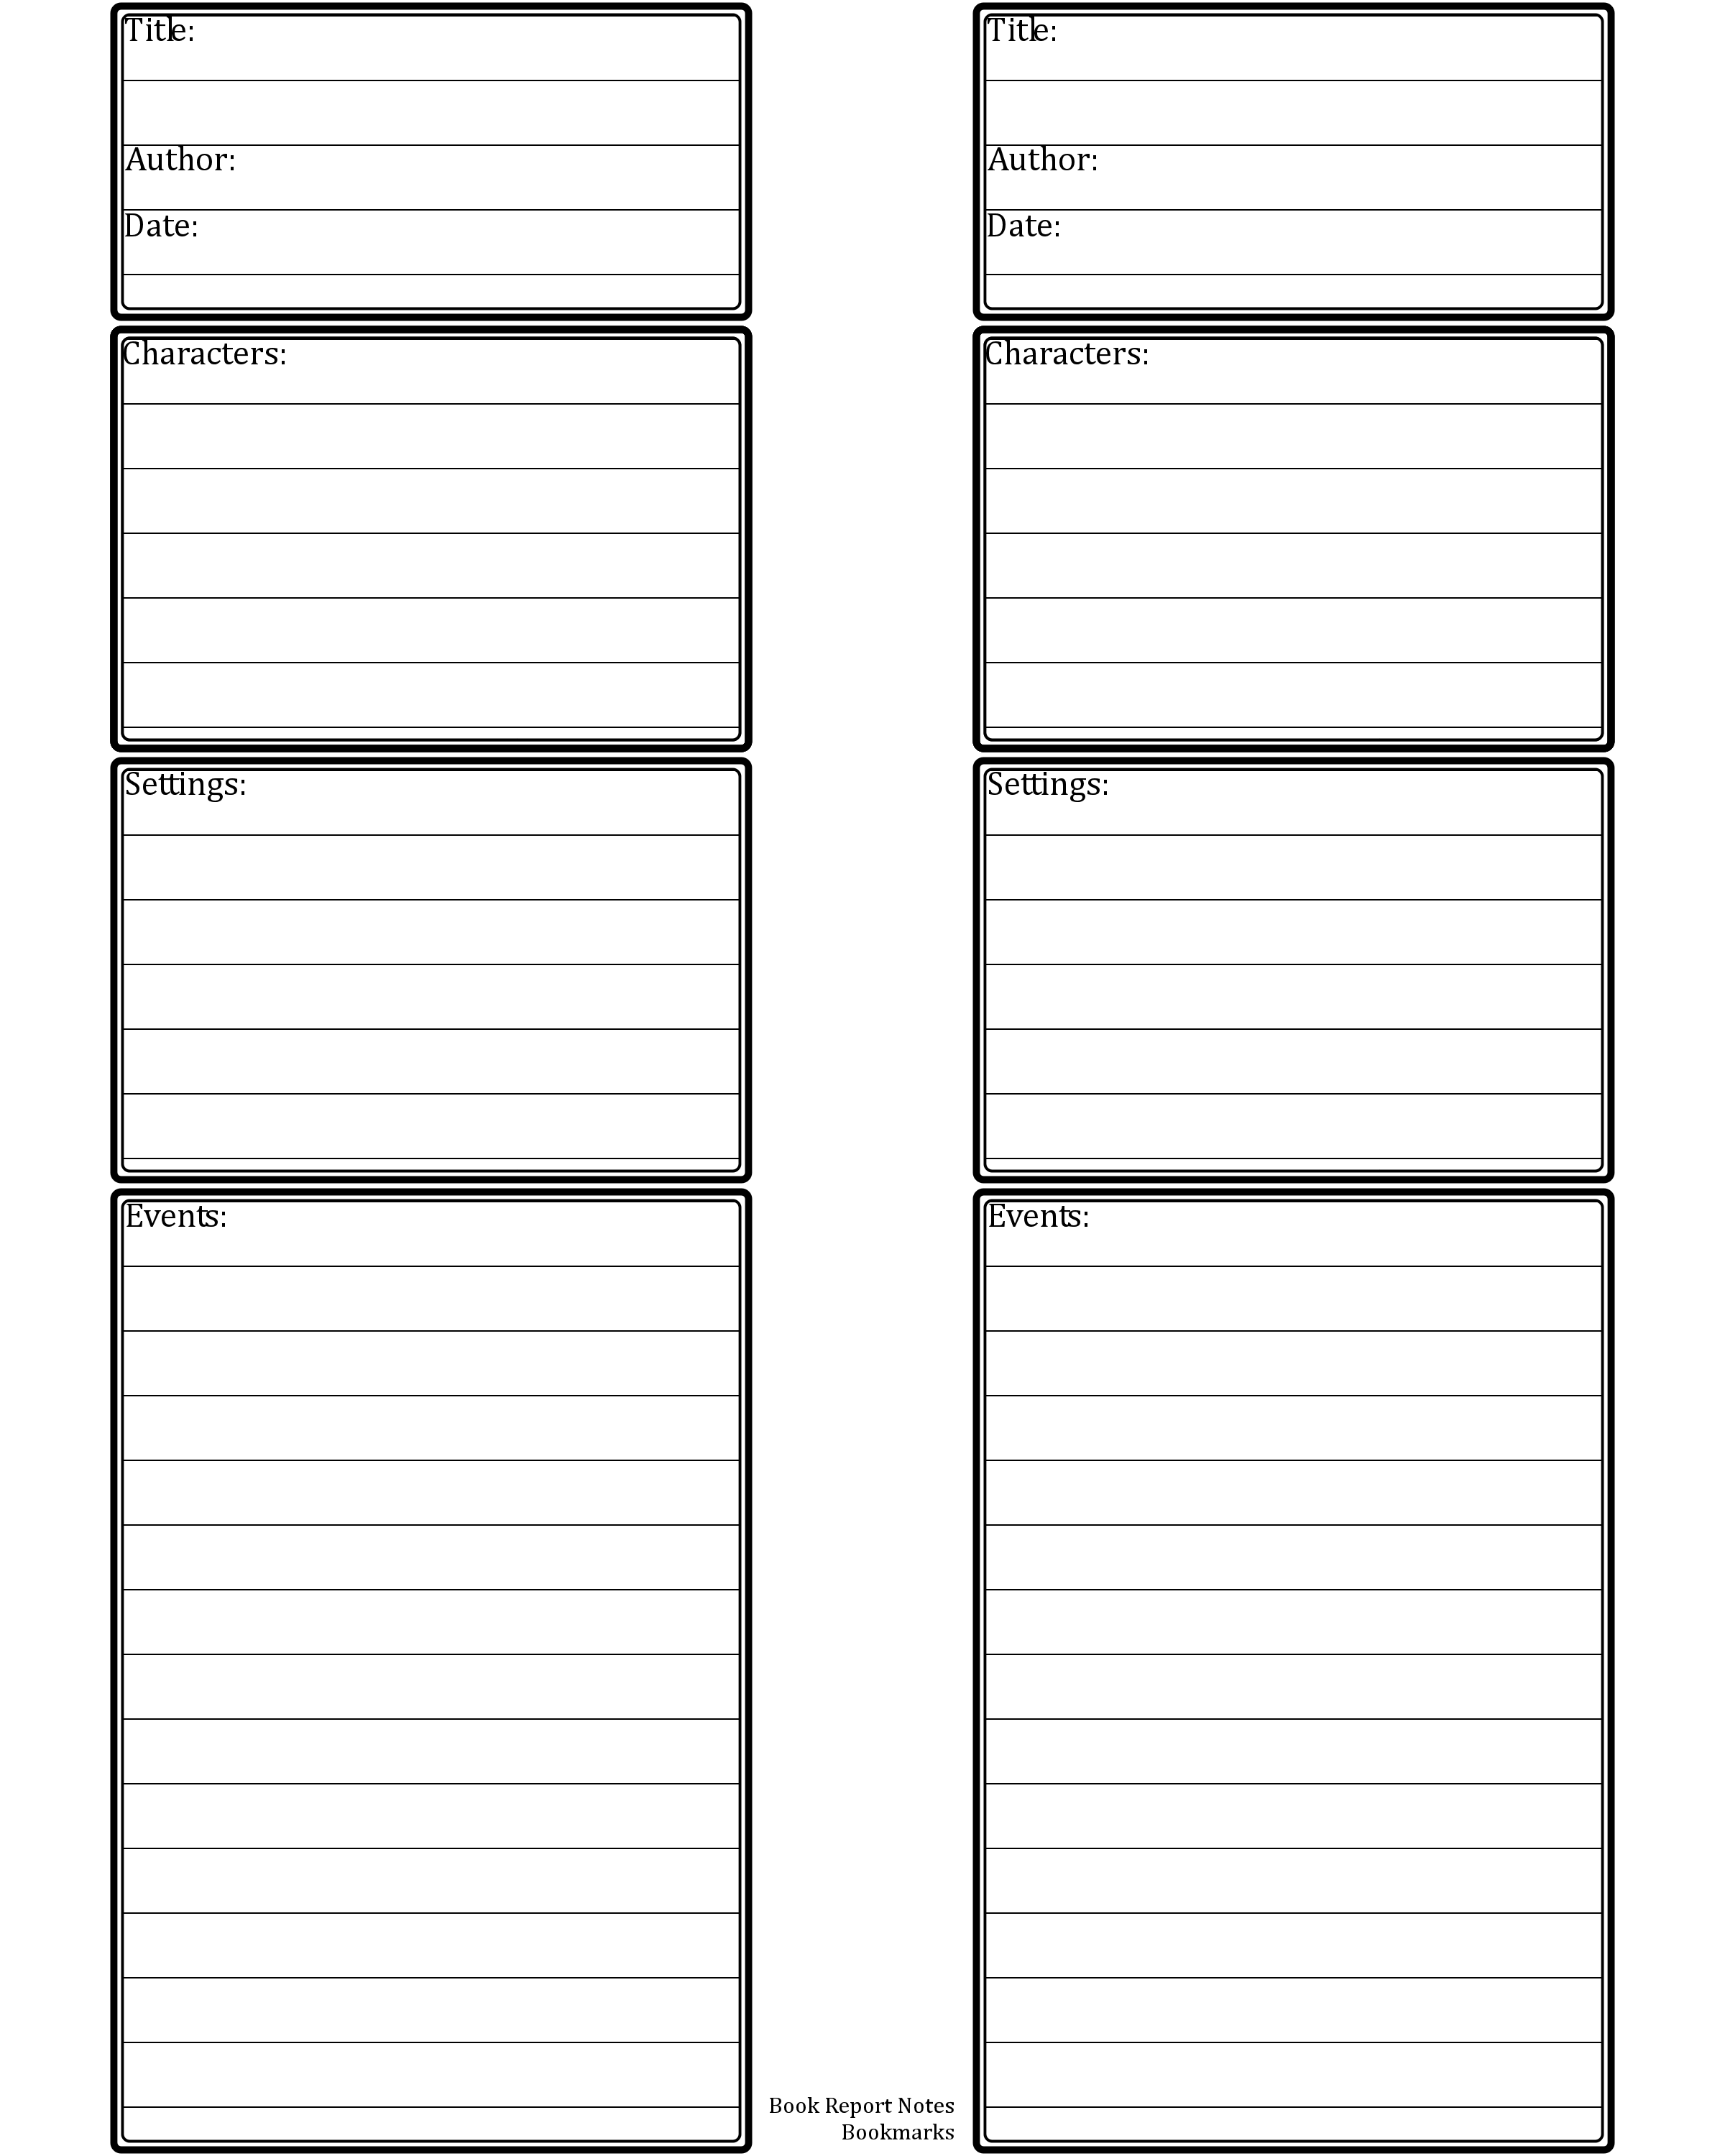 book report blank template